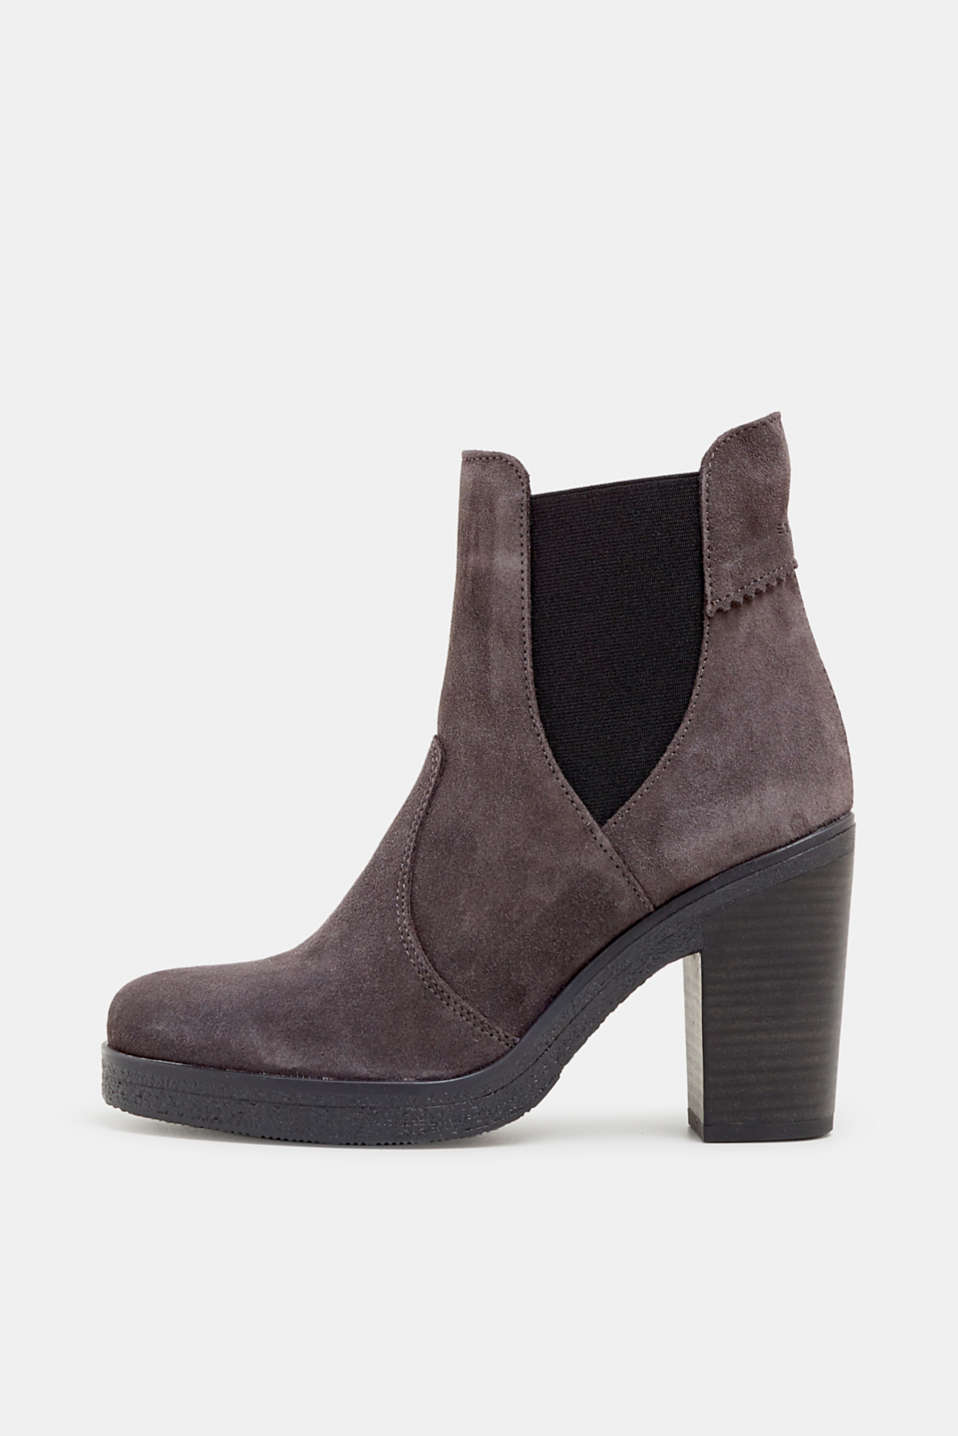 Esprit - Suede boots with a block heel